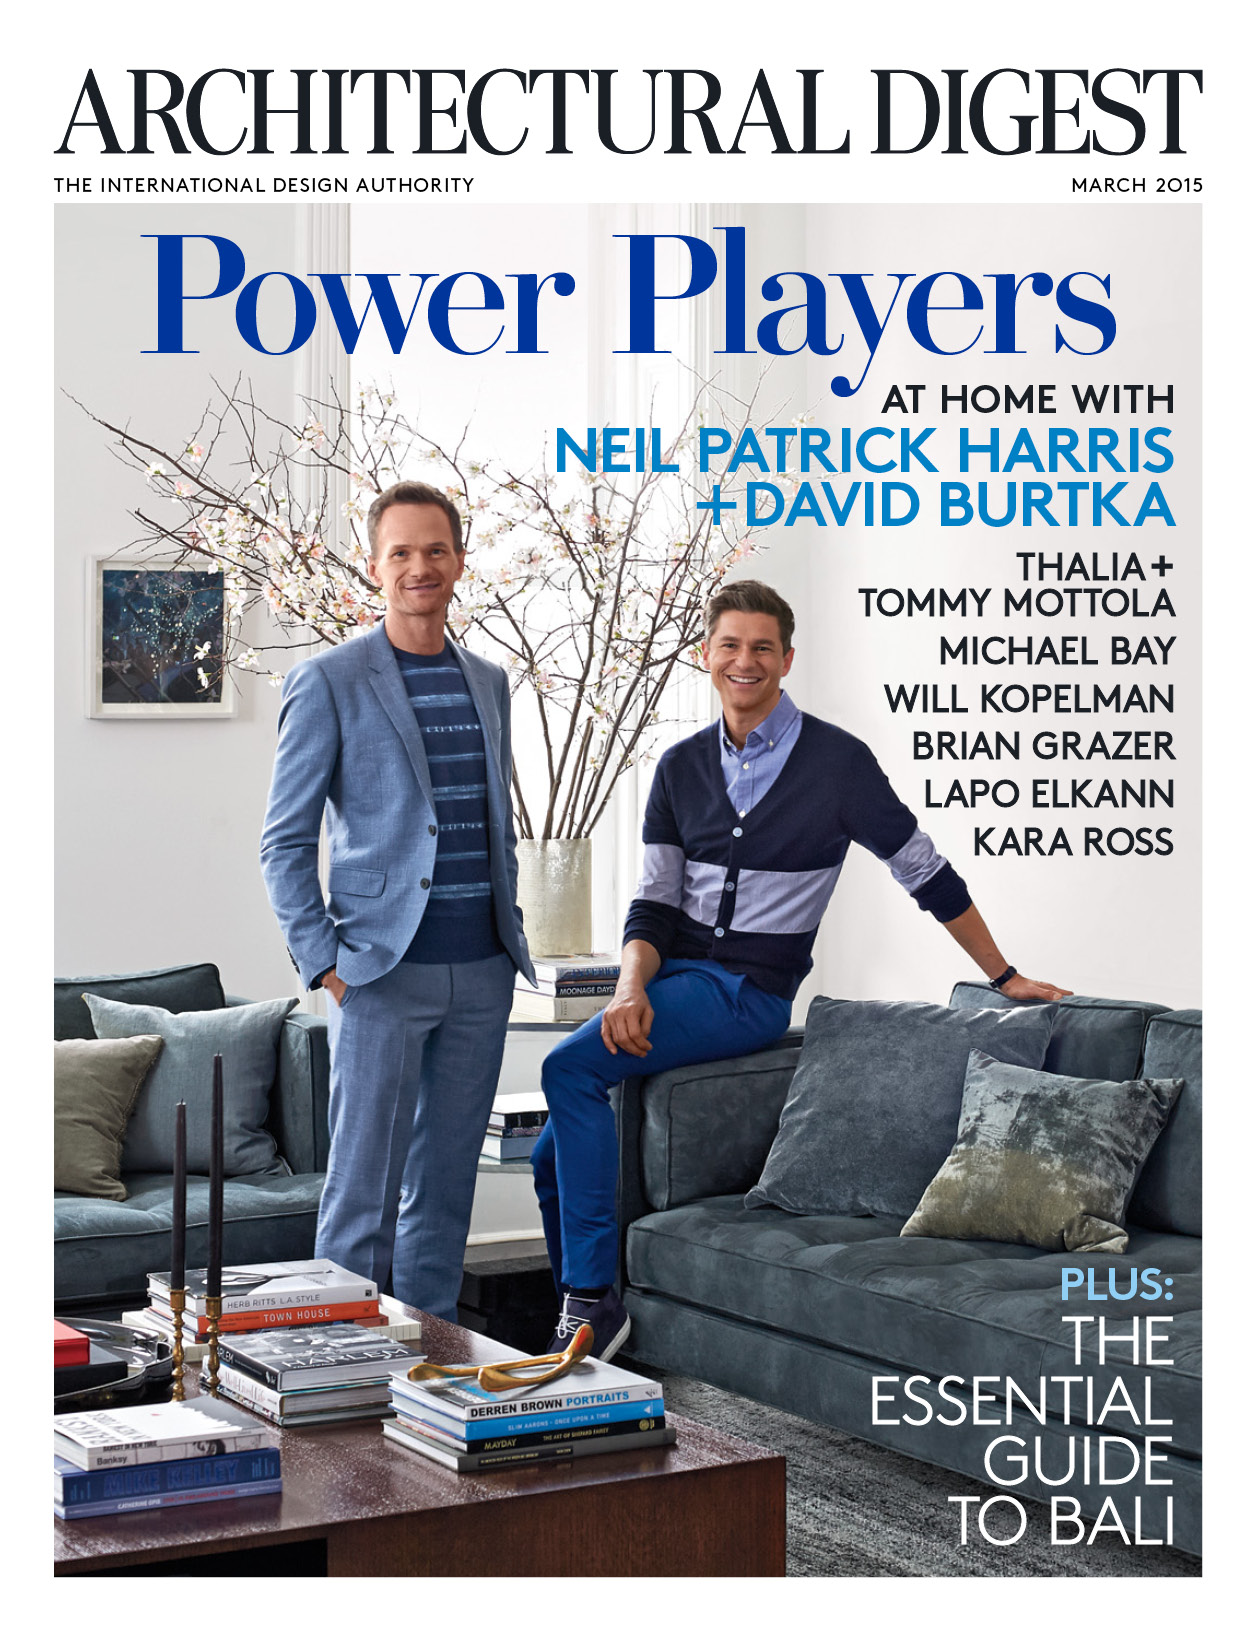 Neil Patrick Harris & David Burtka Open Up Their Harlem Townhouse for Architectural Digest March 2015 Cover Story